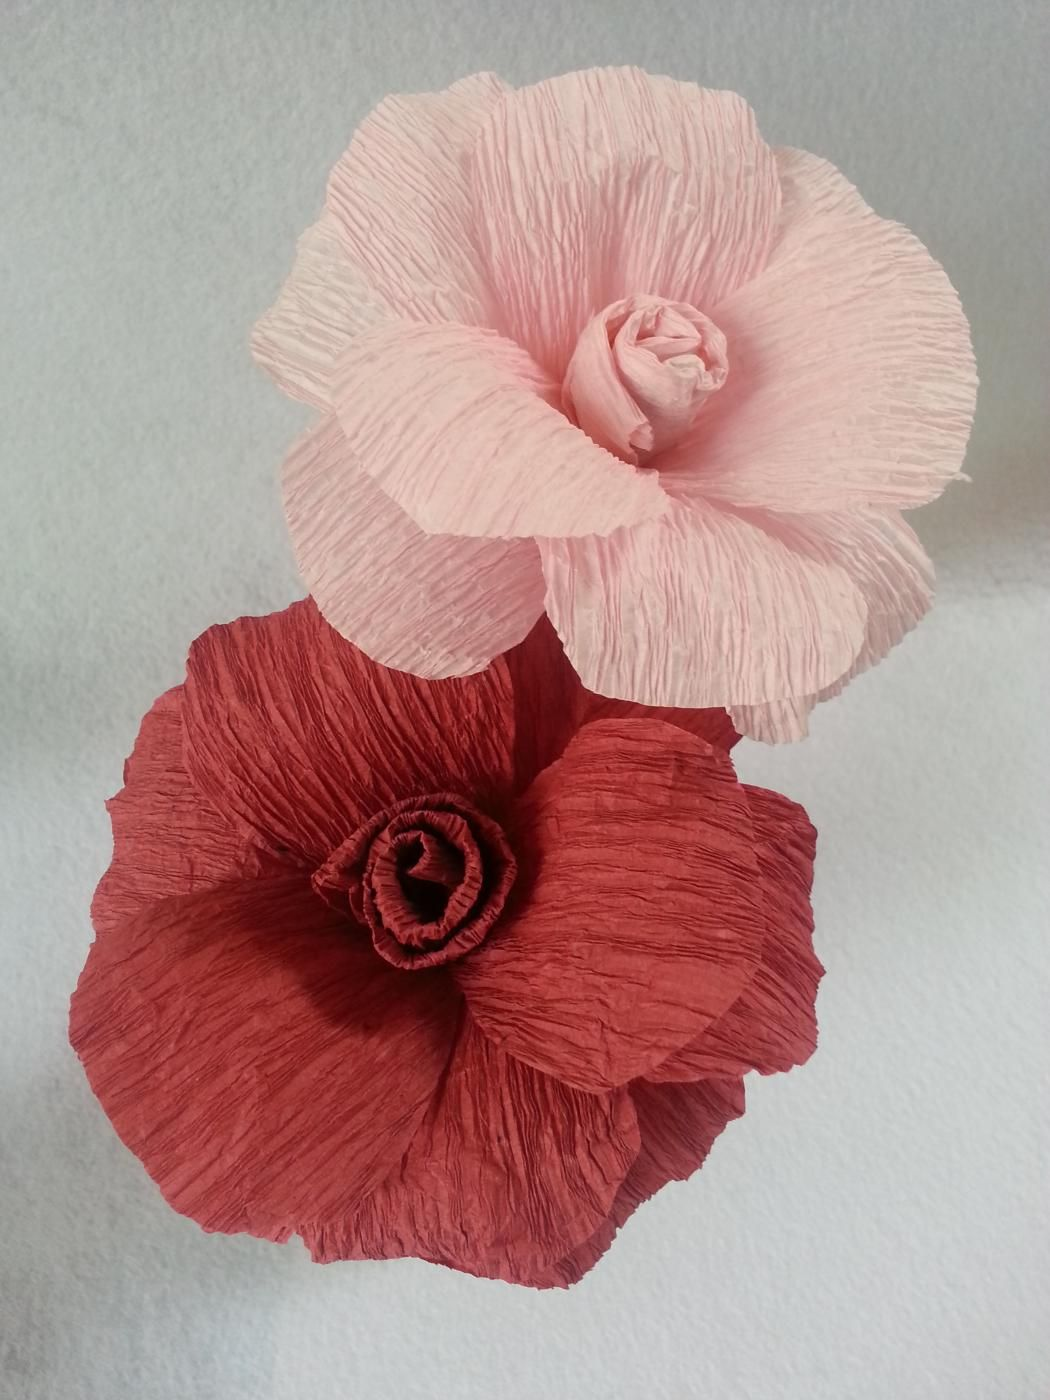 How to make crepe paper flowers crepe paper streamers paper how to make crepe paper flowers dhlflorist Image collections